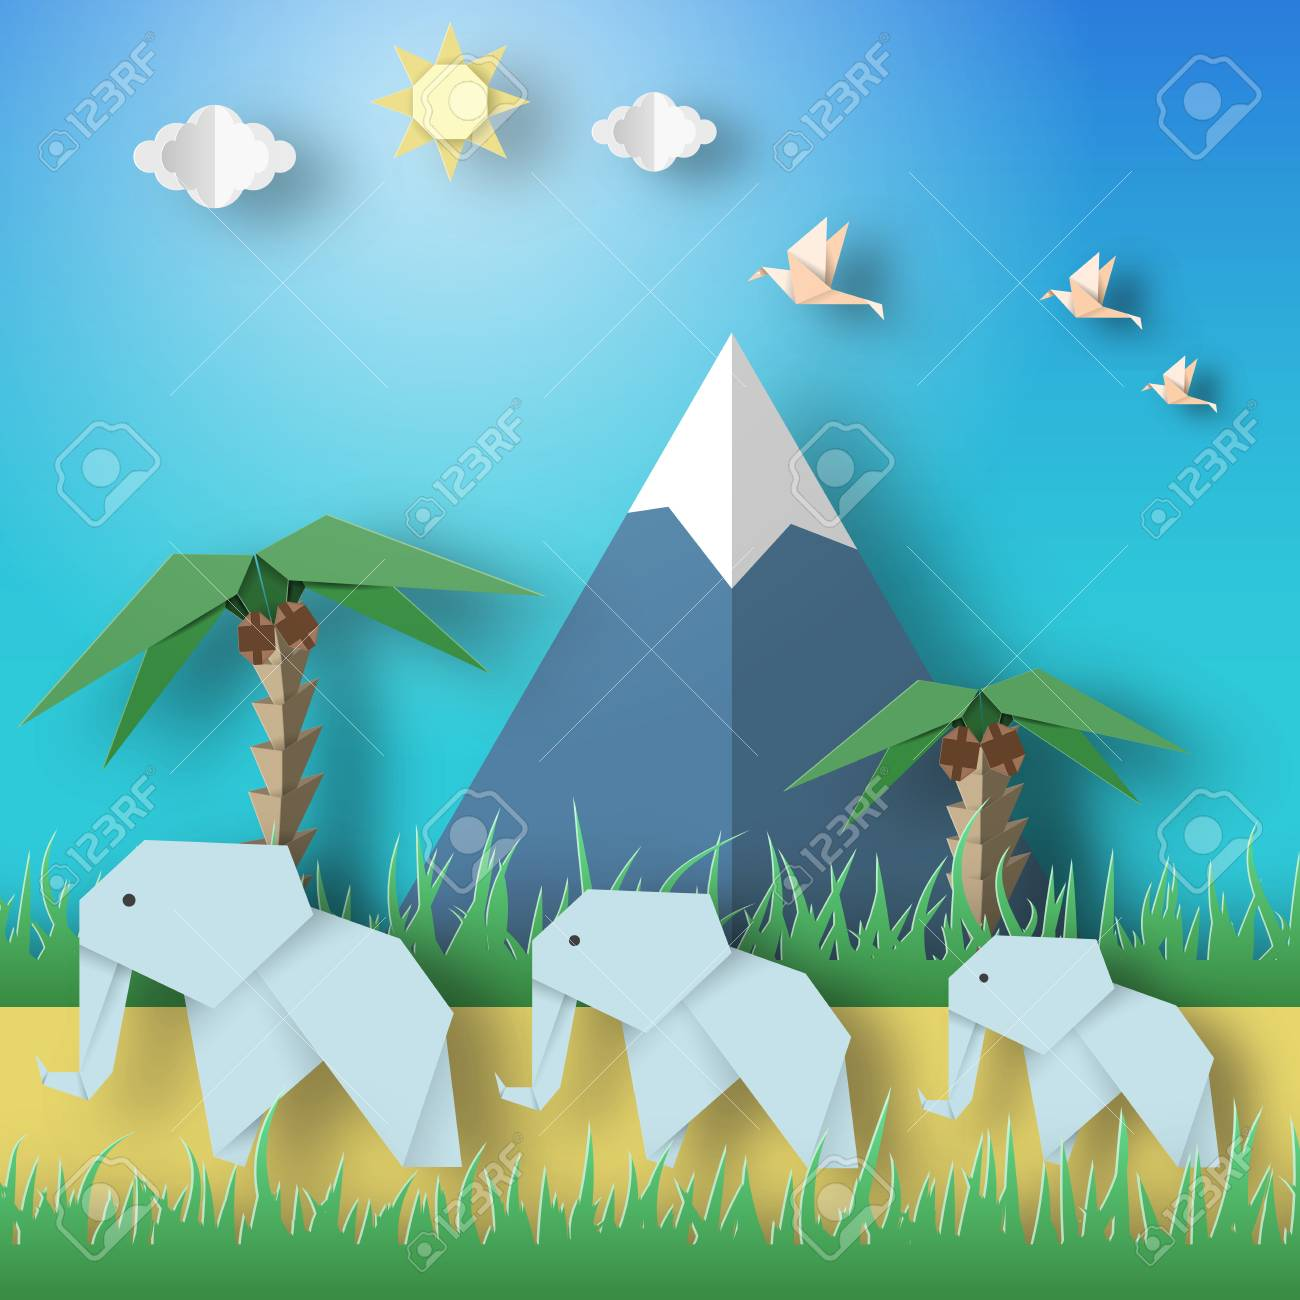 Paper Origami Concept Applique Scene With Cut Elephants Birds Mountains Clouds